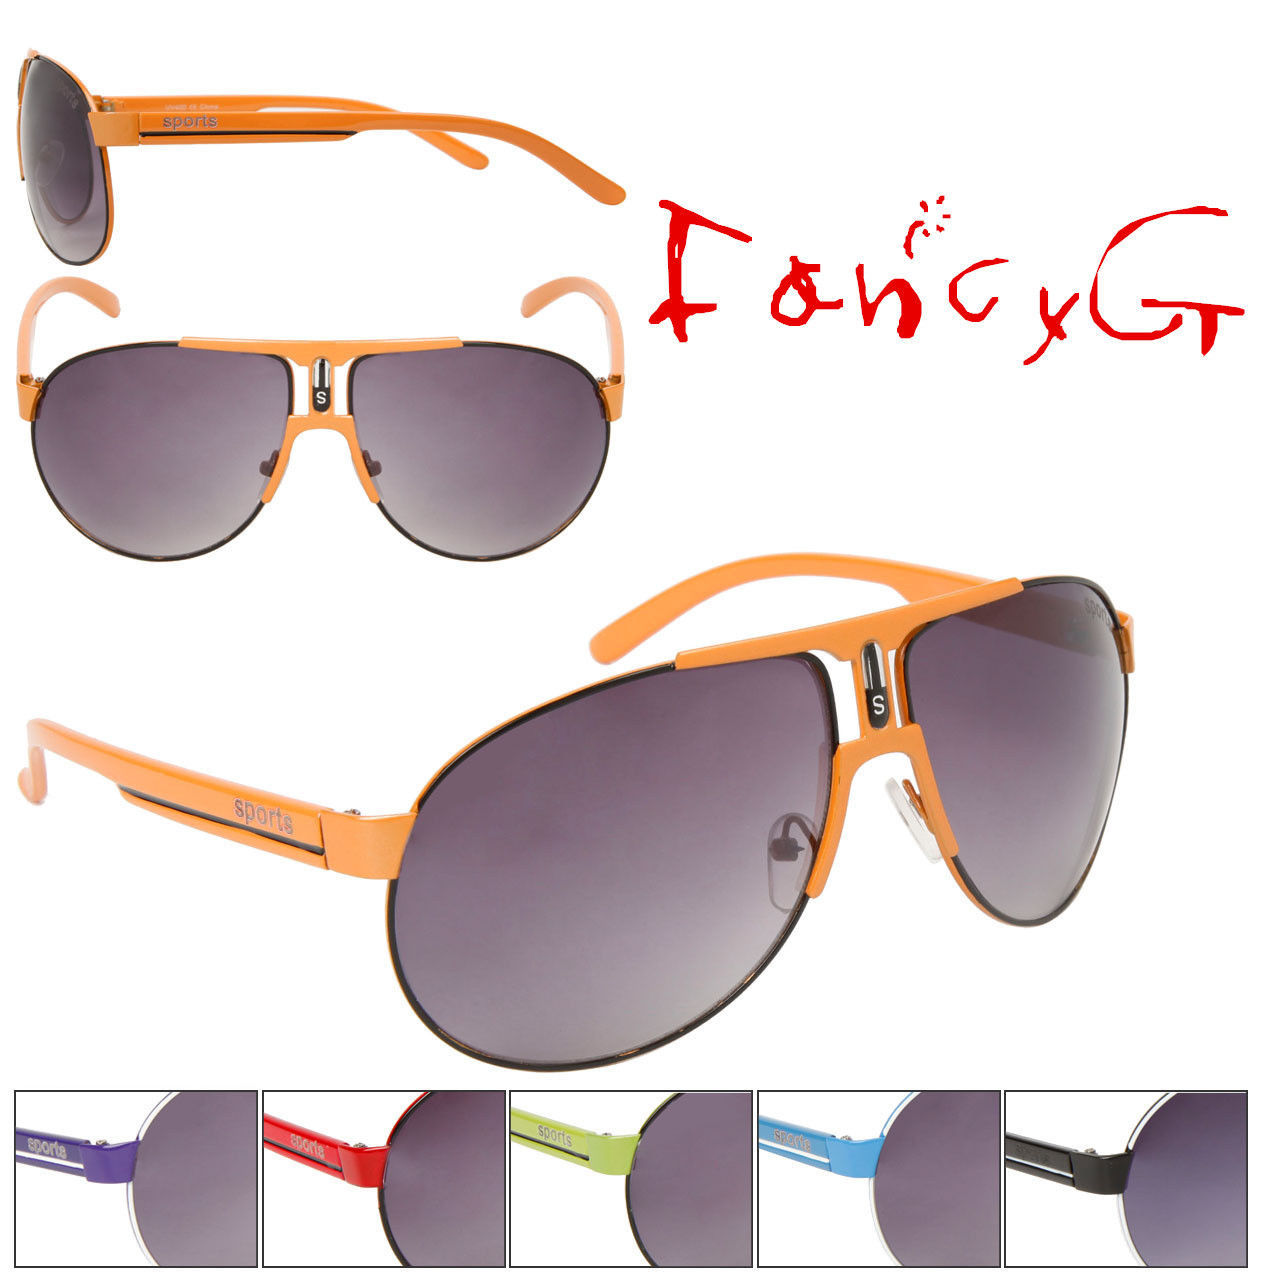 12 Assorted Unisex Fashion Sunglasses Fashion Sporty Style UV 400 Protection image 1